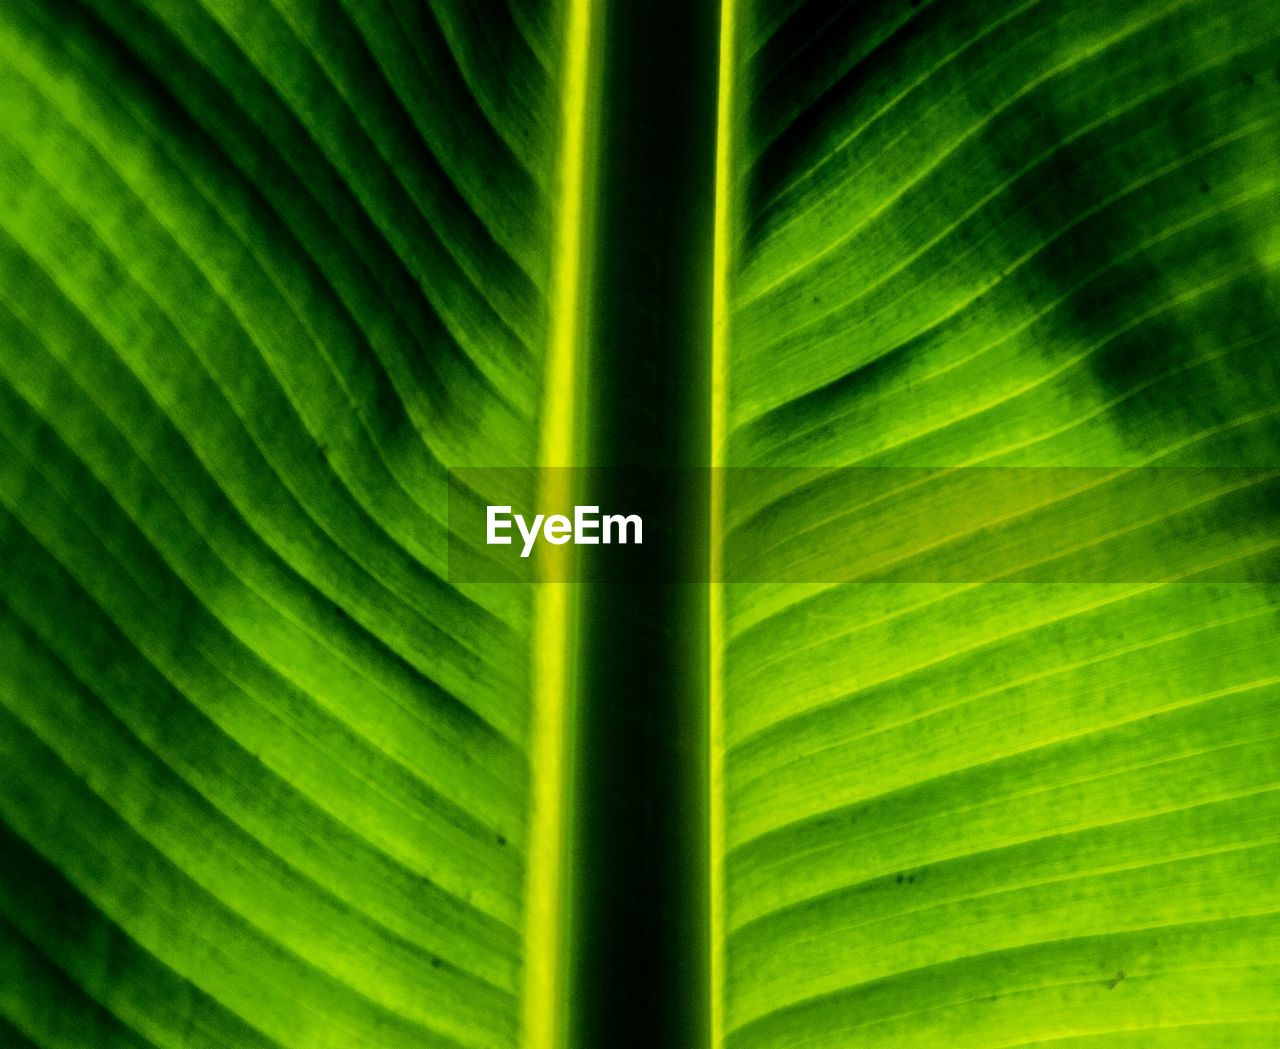 green color, leaf, plant part, plant, growth, palm tree, backgrounds, close-up, full frame, no people, nature, beauty in nature, palm leaf, natural pattern, leaf vein, pattern, day, tropical climate, leaves, banana leaf, outdoors, blade of grass